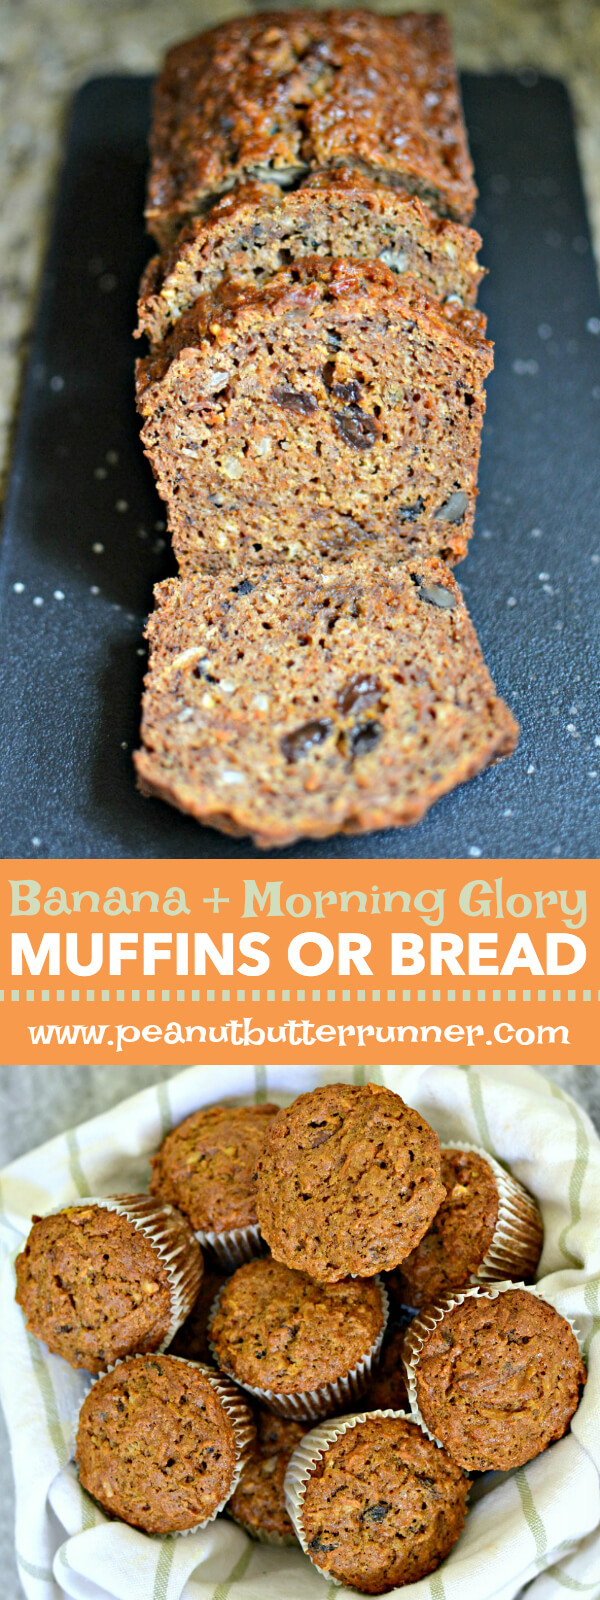 Banana Morning Glory Muffins or Quick Bread Recipe